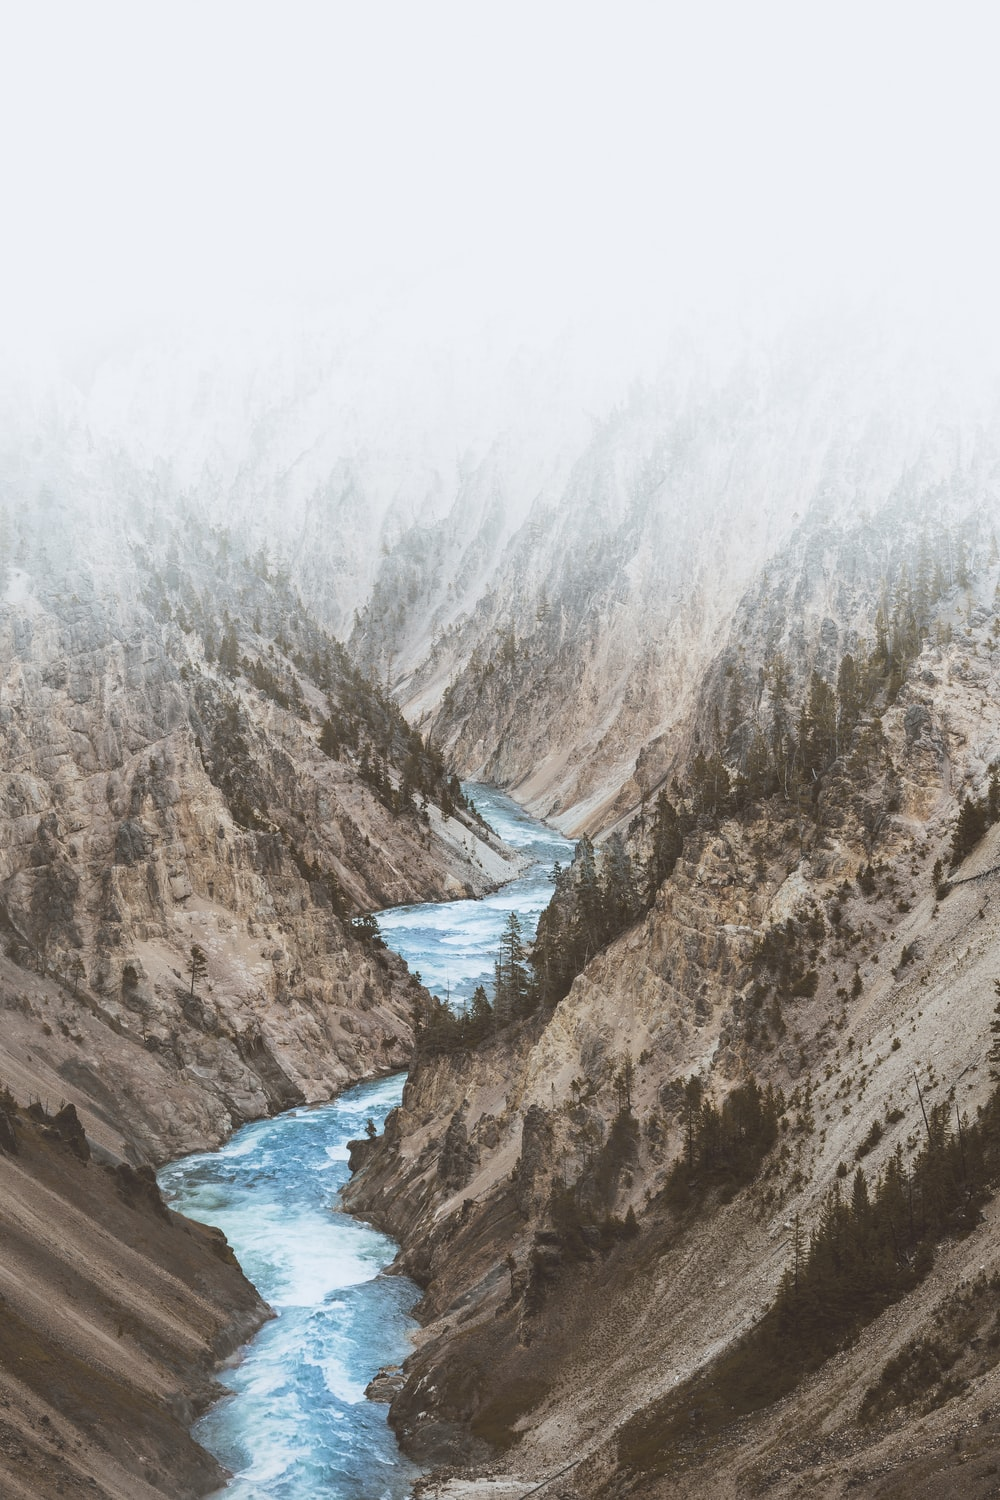 river between mountains under white clouds